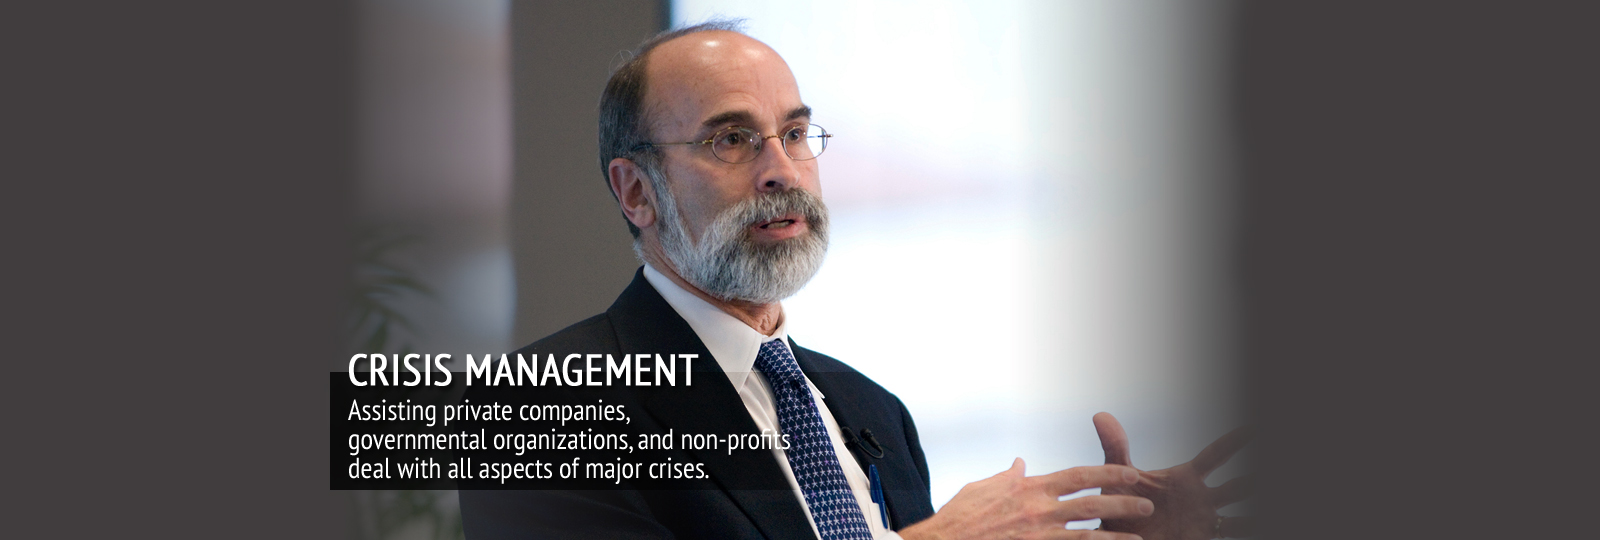 Slide 1 – Crisis Management